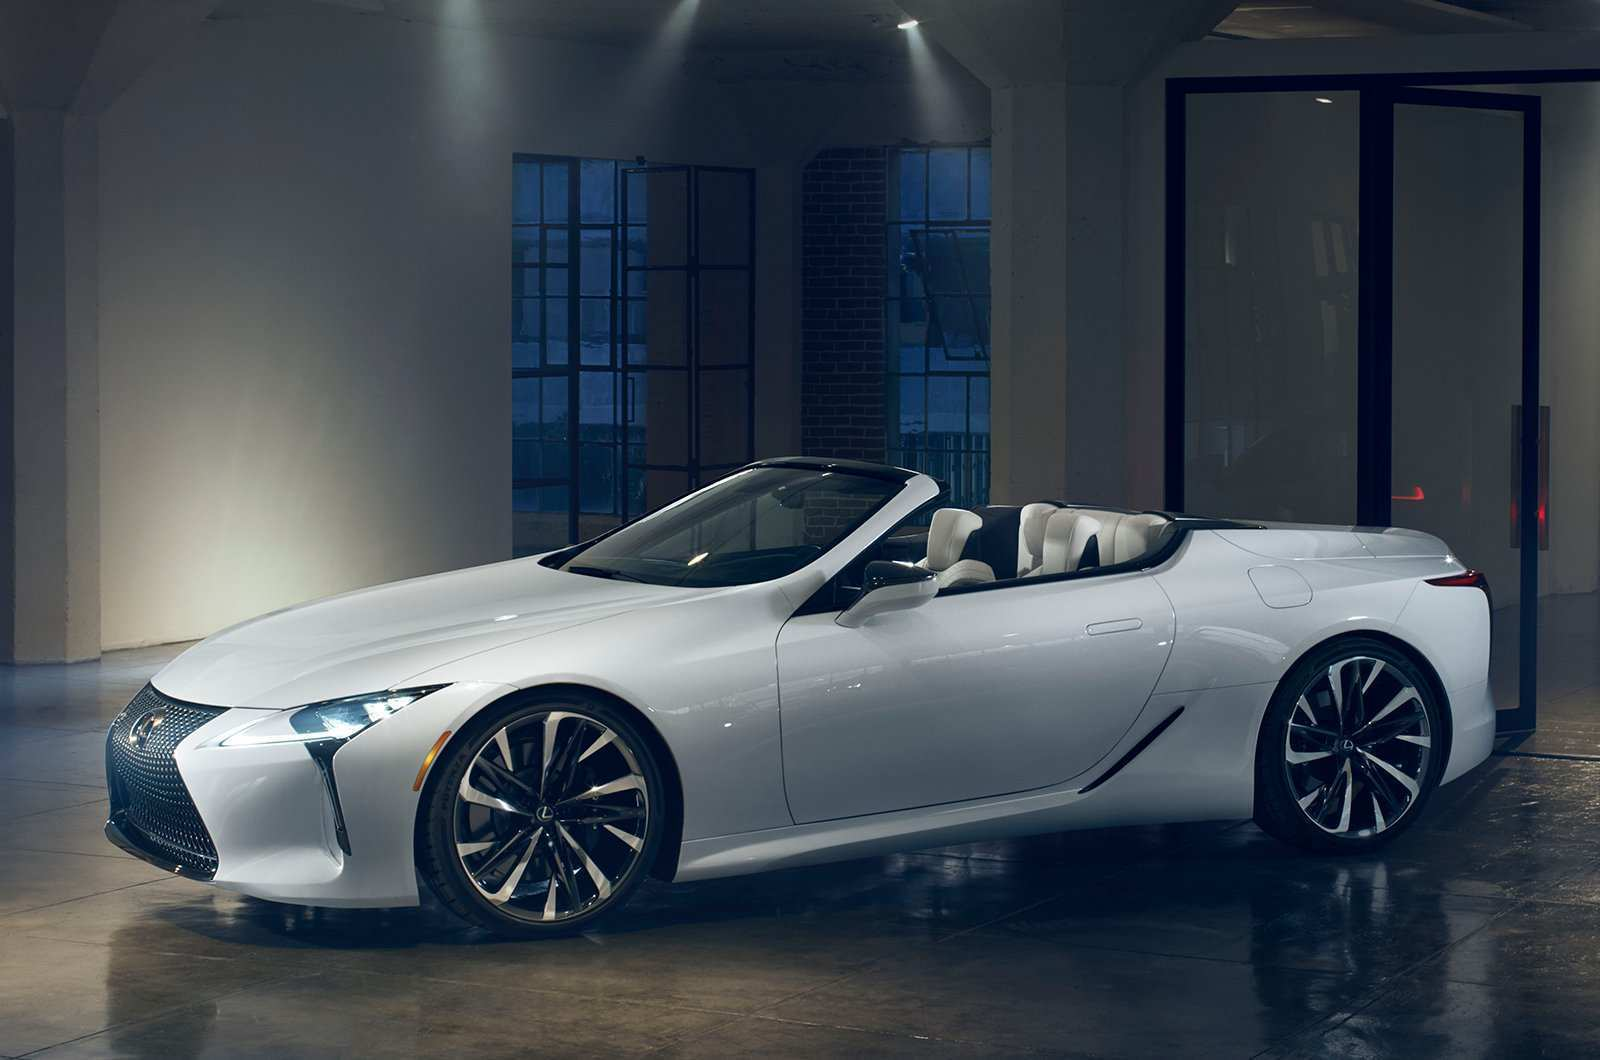 60 New Lexus Convertible 2020 Exterior